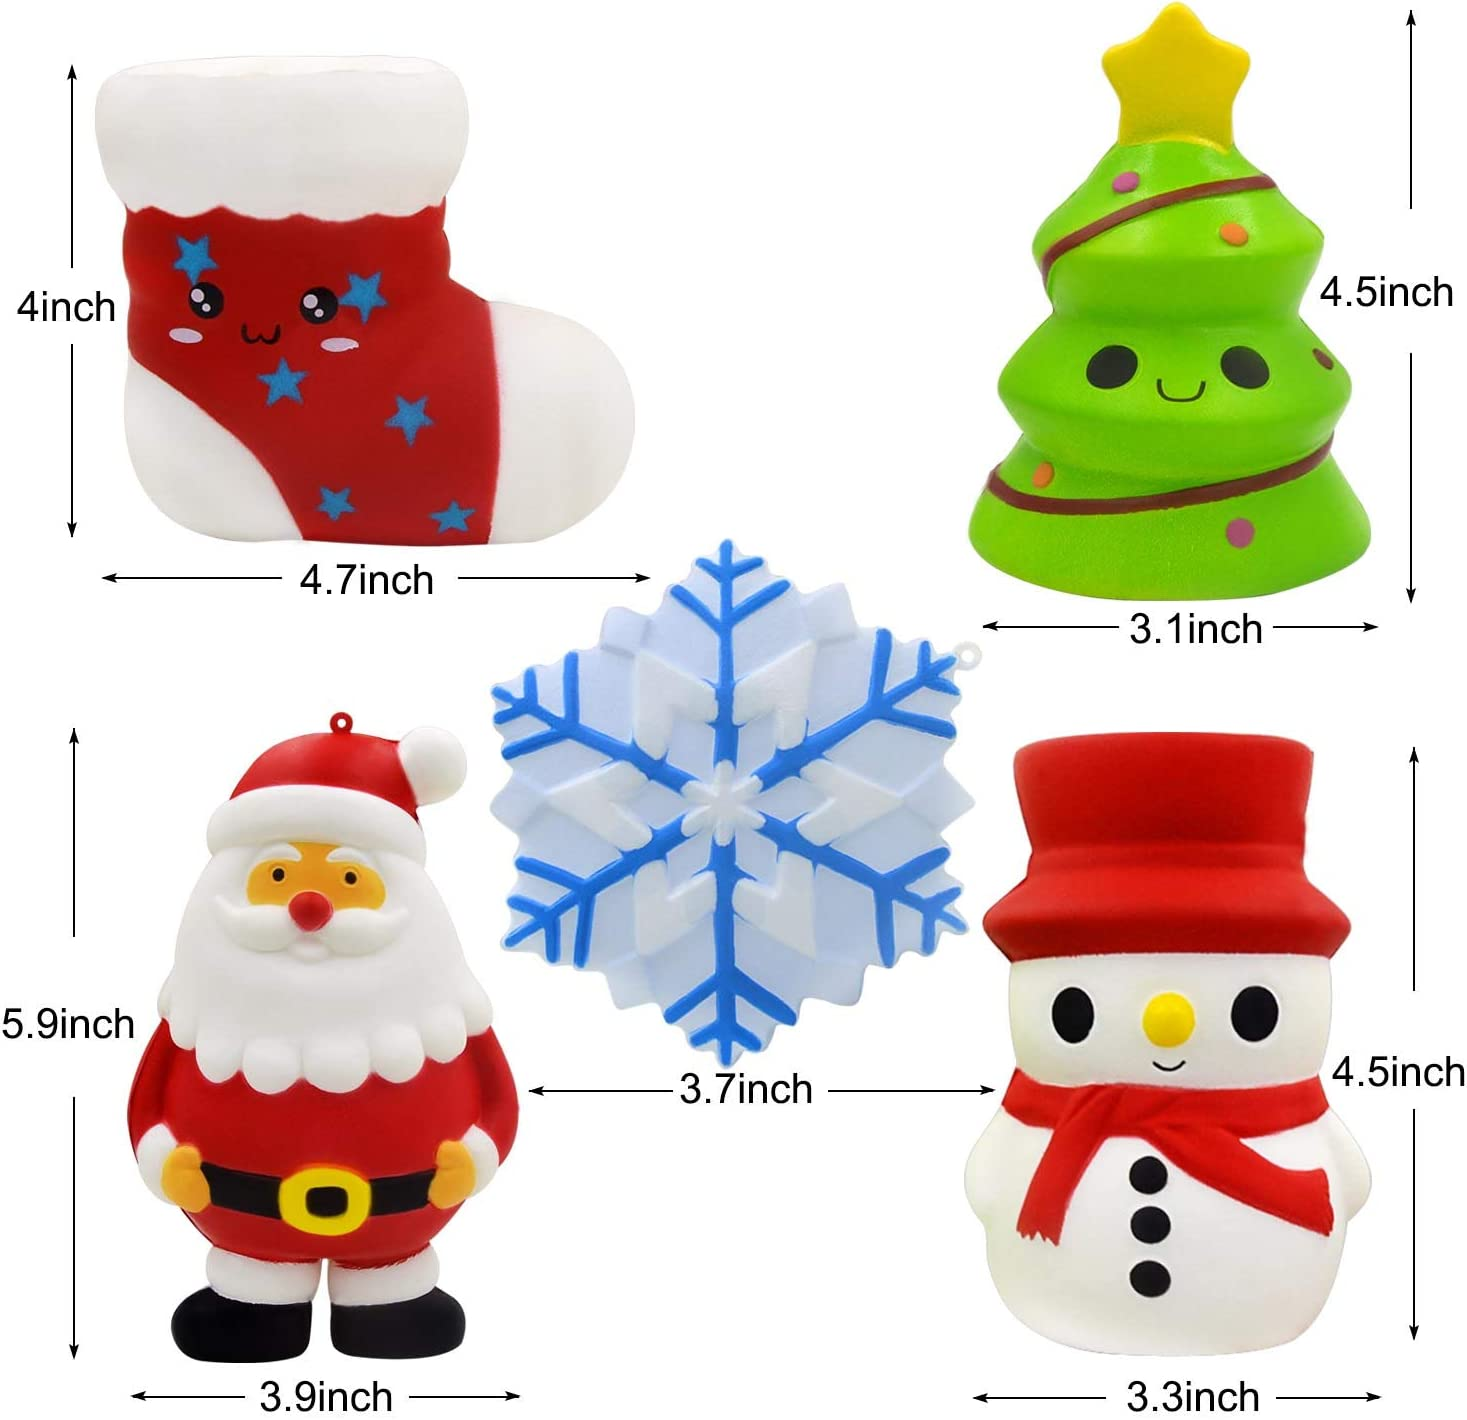 Christmas Tree Santa Snowman U-Goforst 5PCS Slow Rising Christmas Squishies Funny Jumbo Gift Pack XMas 5pcs Stocking and Snowflake Squeeze Soft Stress Relief Hop Props Sensory Squishy Toys